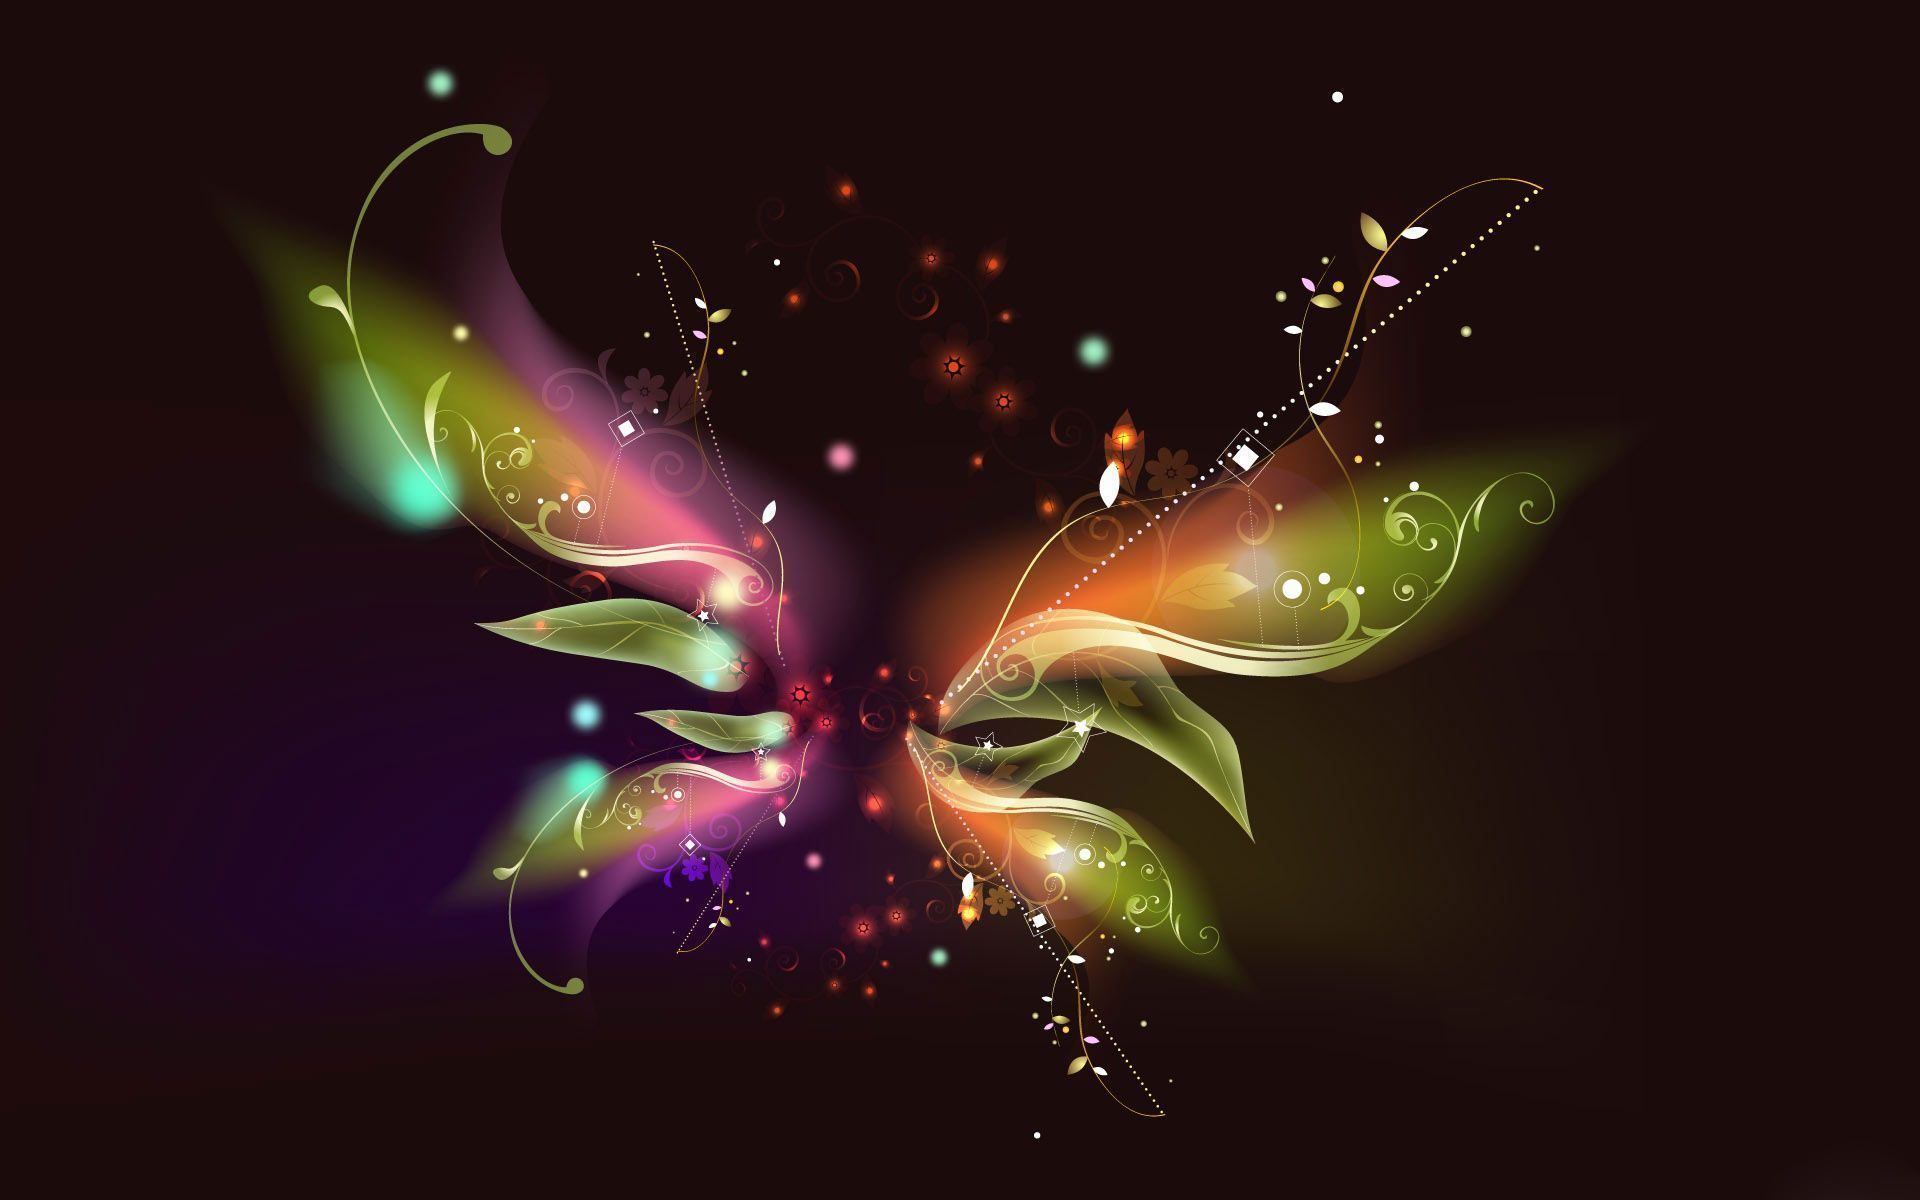 Butterfly Desktop Wallpaper